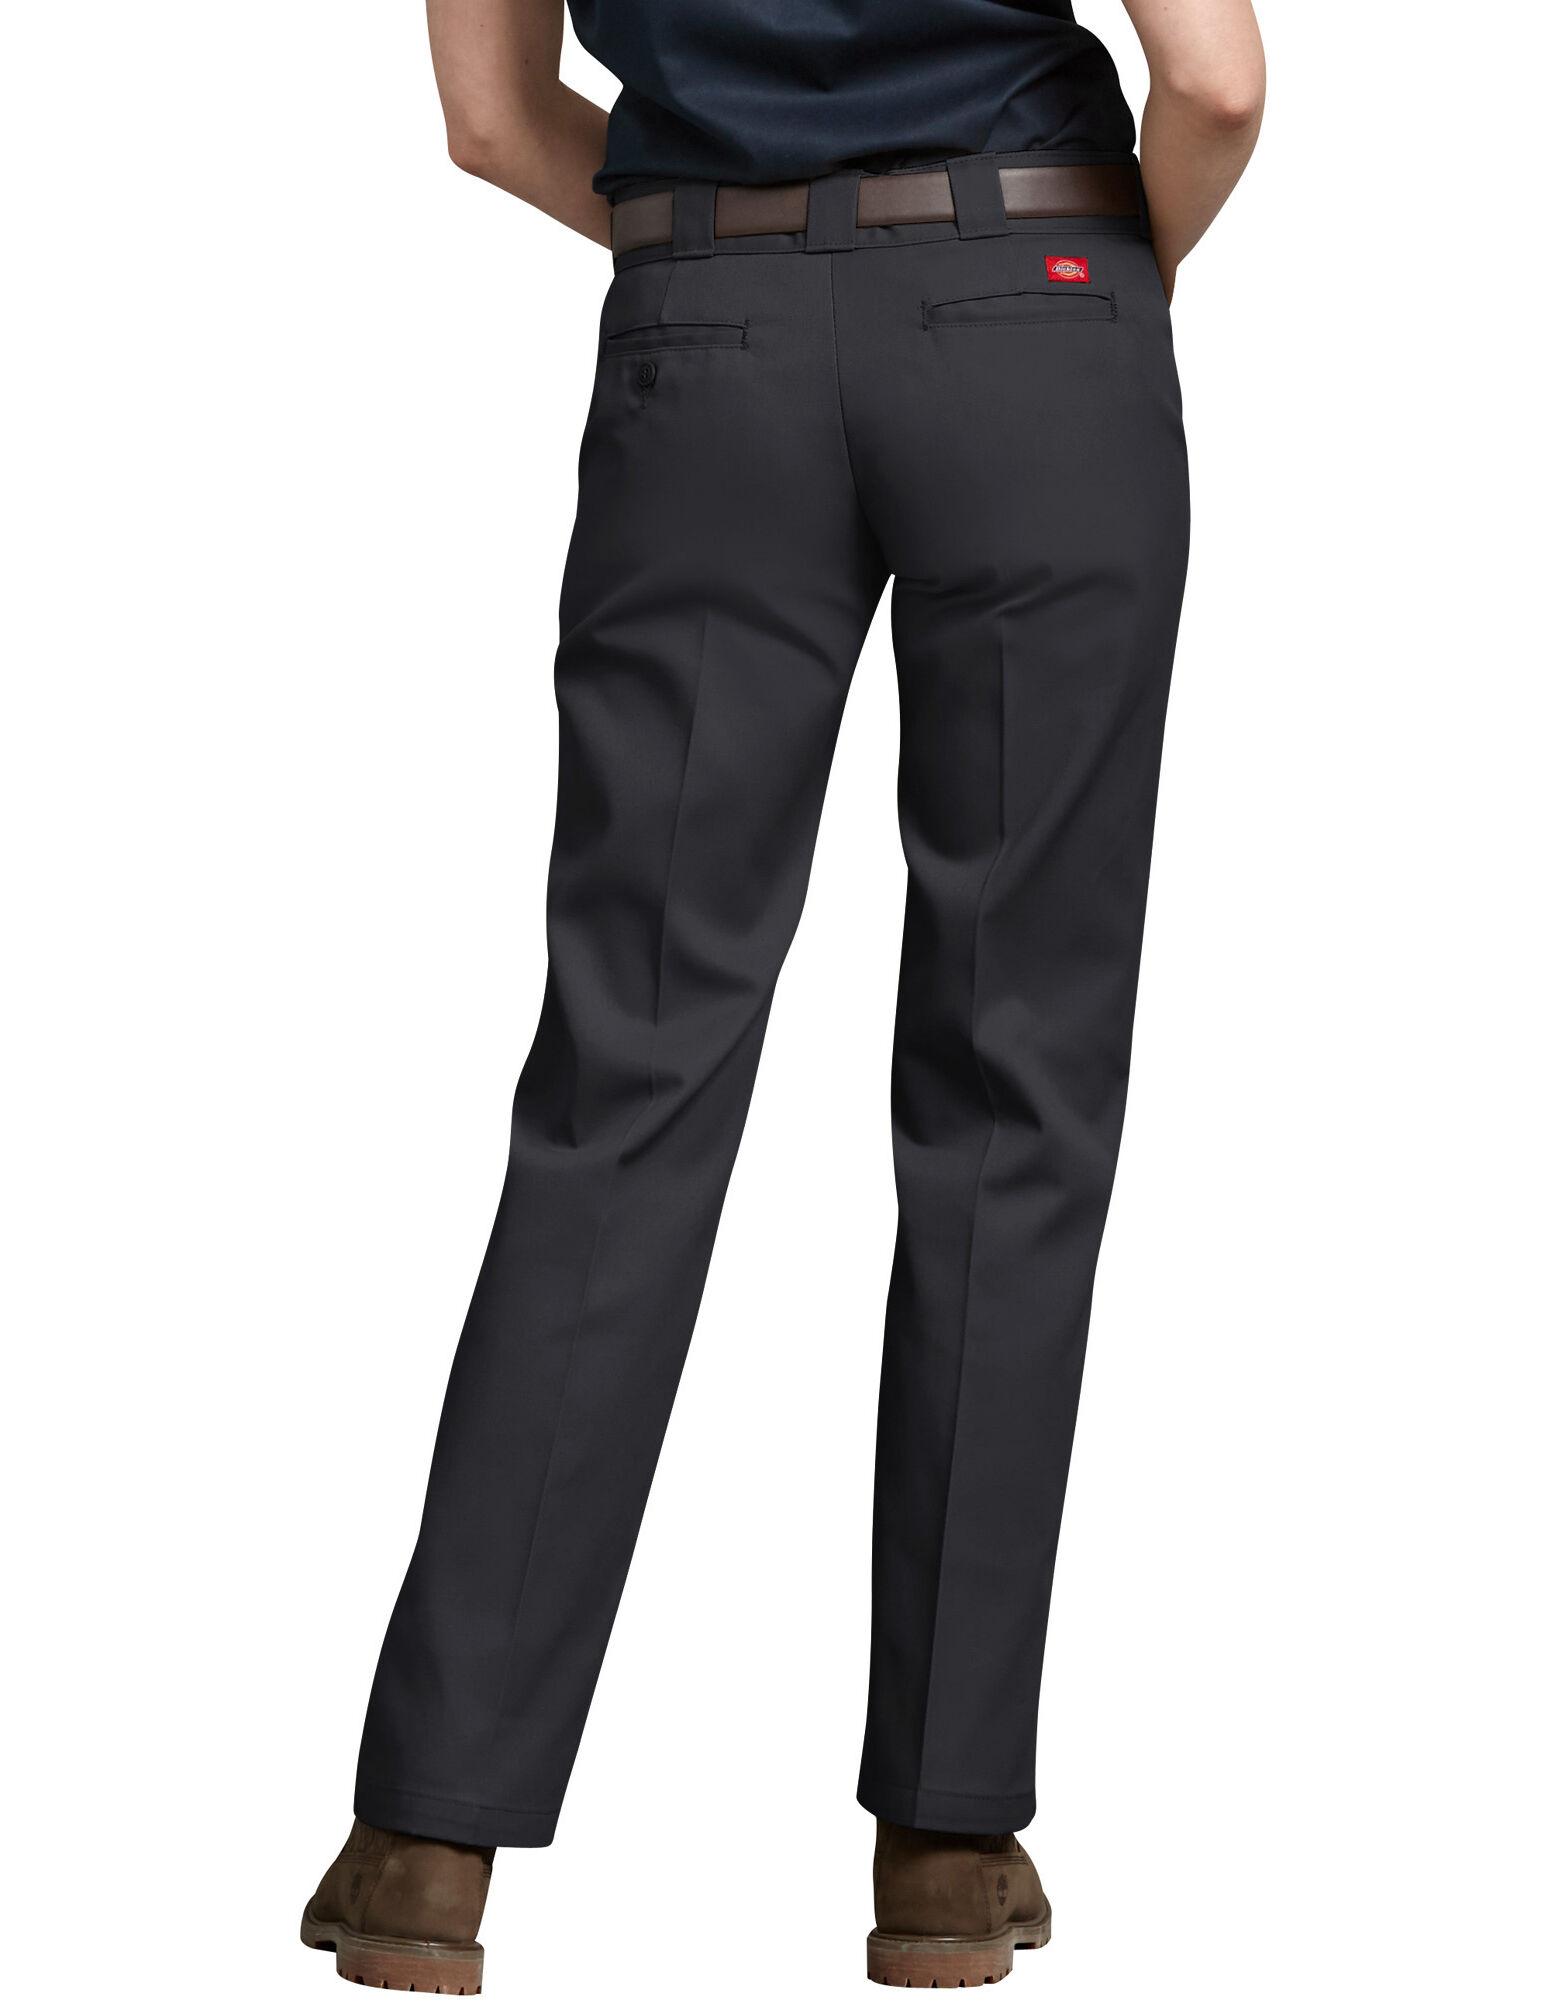 Womens Original 774® Work Pants | Dickies Canada